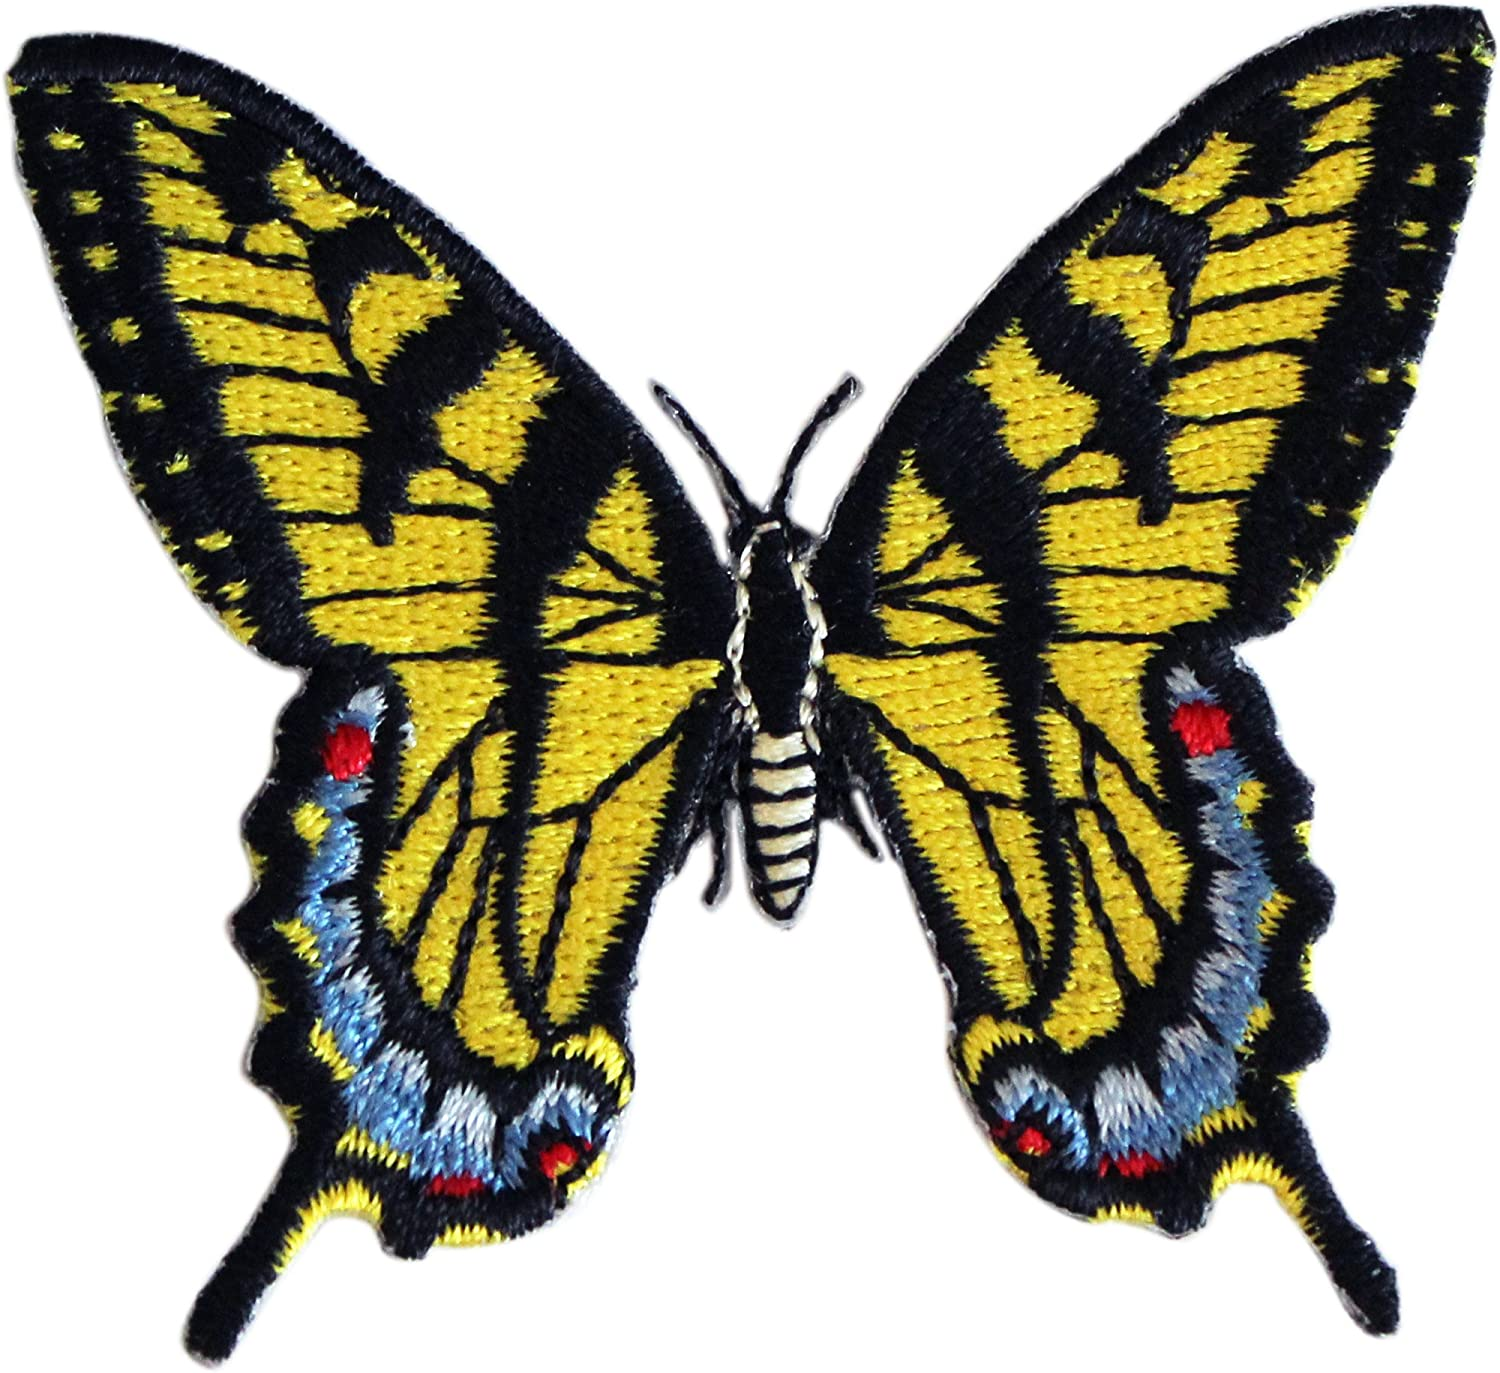 CD 2021 new Visionary Application Gifts Butterfly Swallowtail Patch